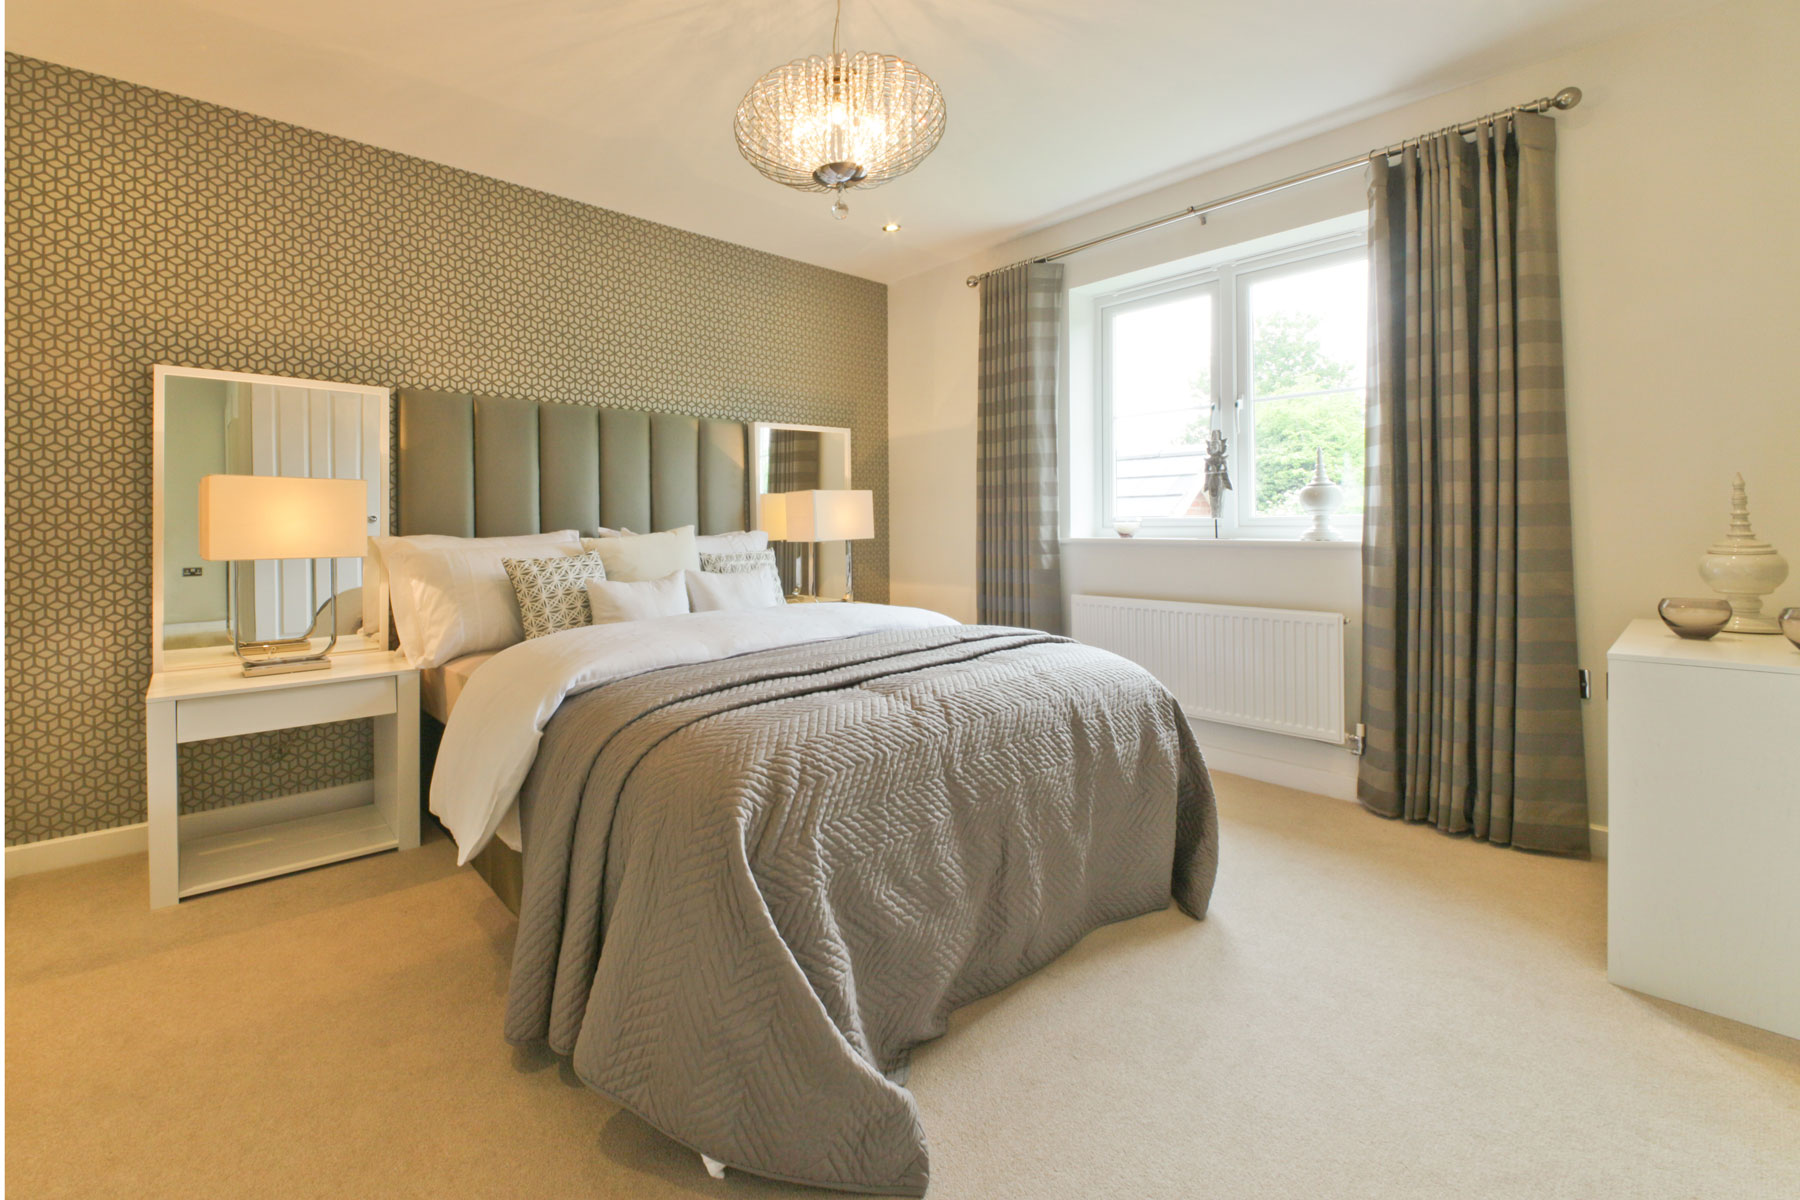 A typical Taylor Wimpey master bedroom.